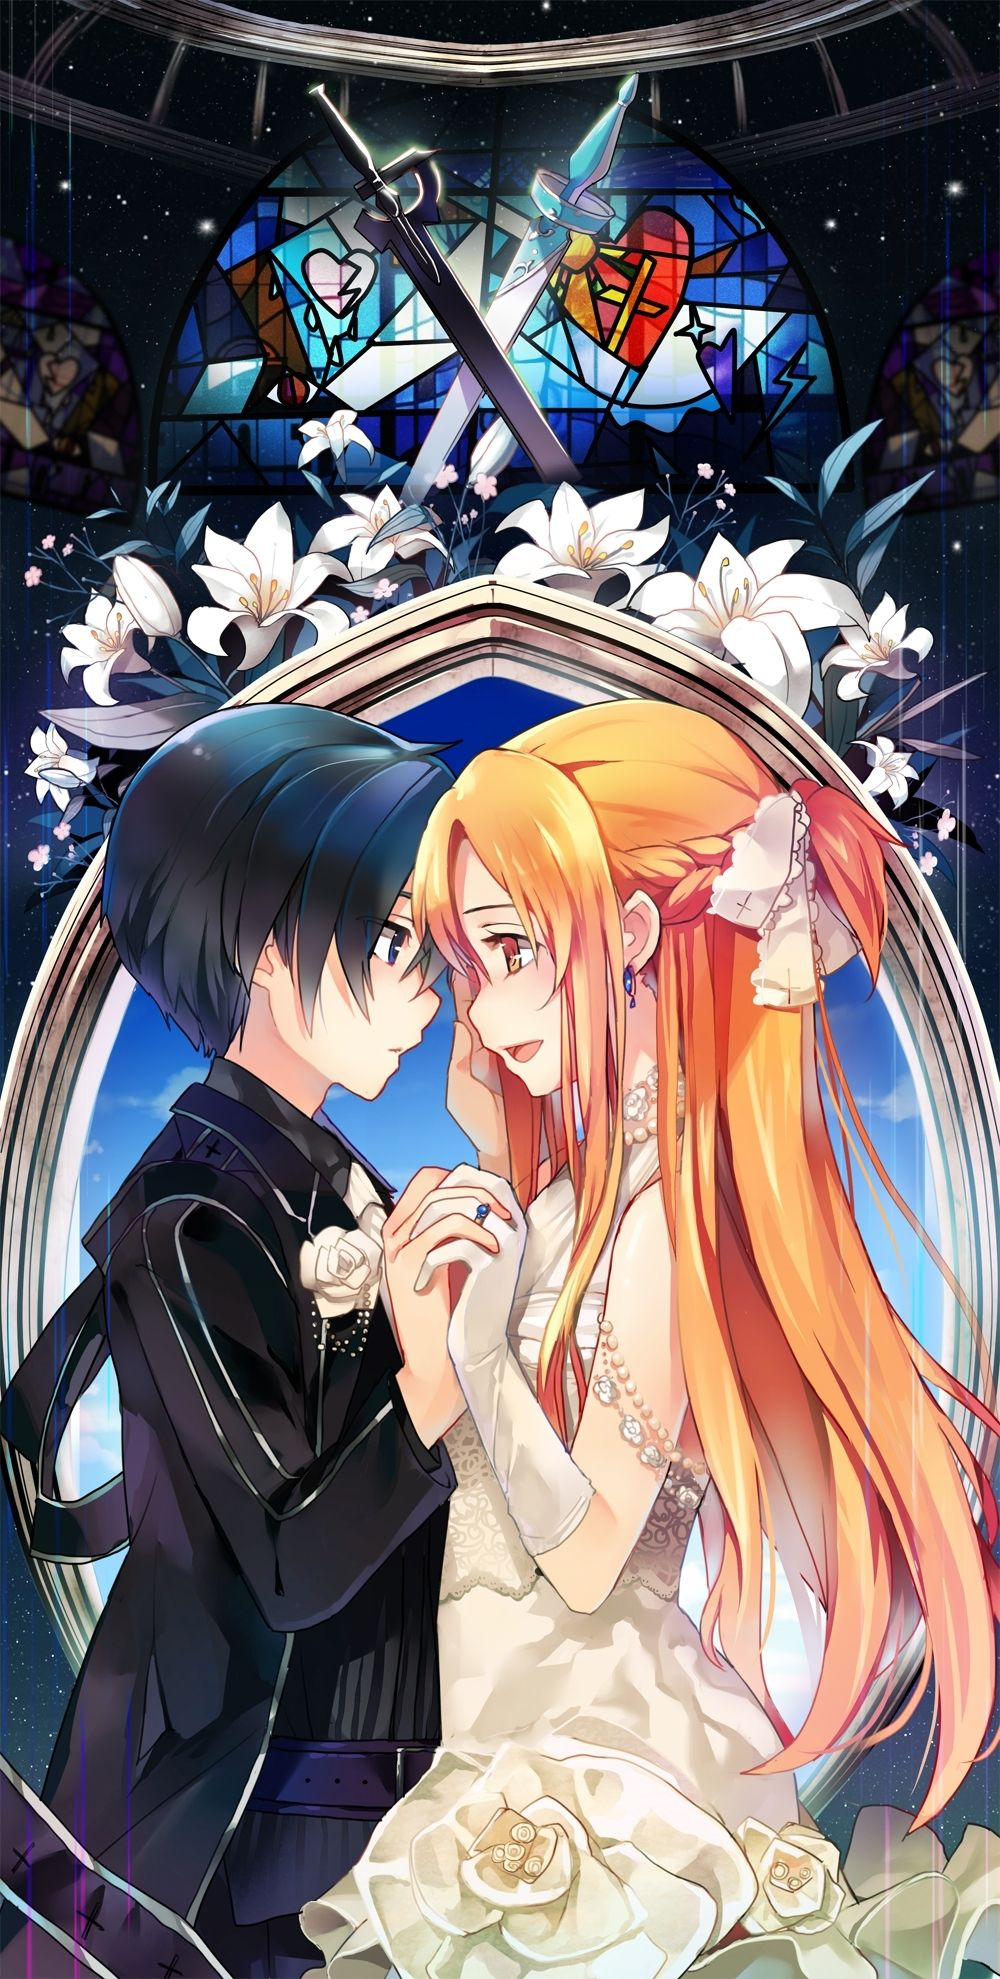 I Love How They Are Married And Kirito Still Looks At Asuna Like The Most Beautiful Thing He Has Ever Seen Loves Her More Than Anything